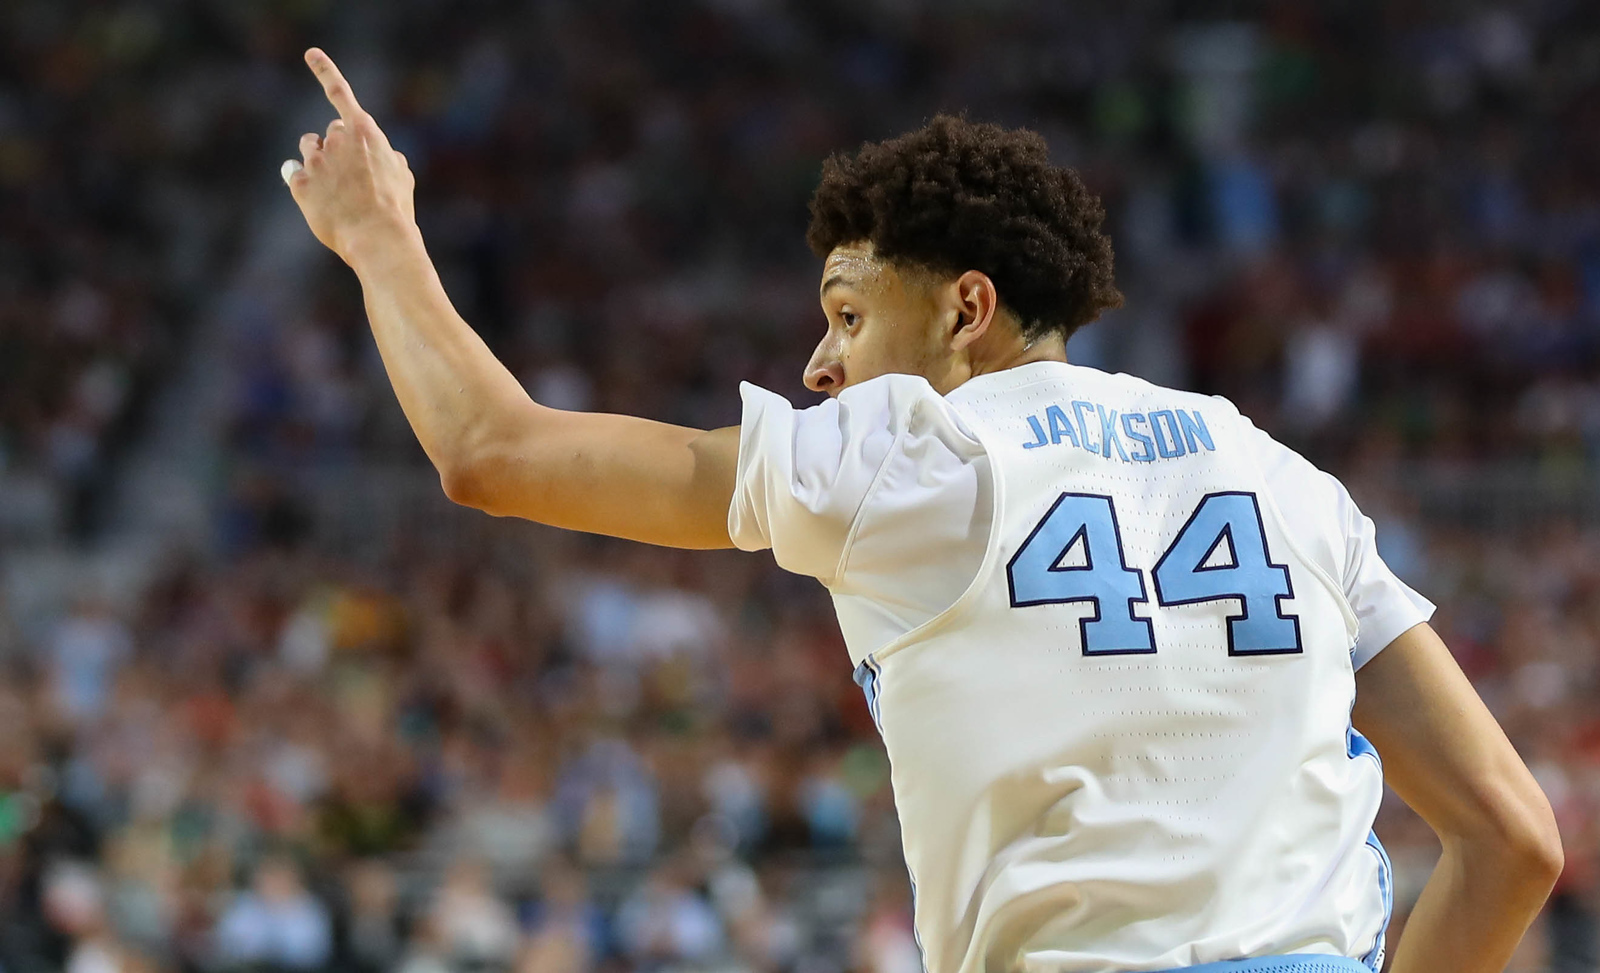 North Carolina wing Justin Jackson (44) points to the bench after hitting a 3-pointer against Oregon in the teams' Final Four matchup on Saturday in Phoenix.